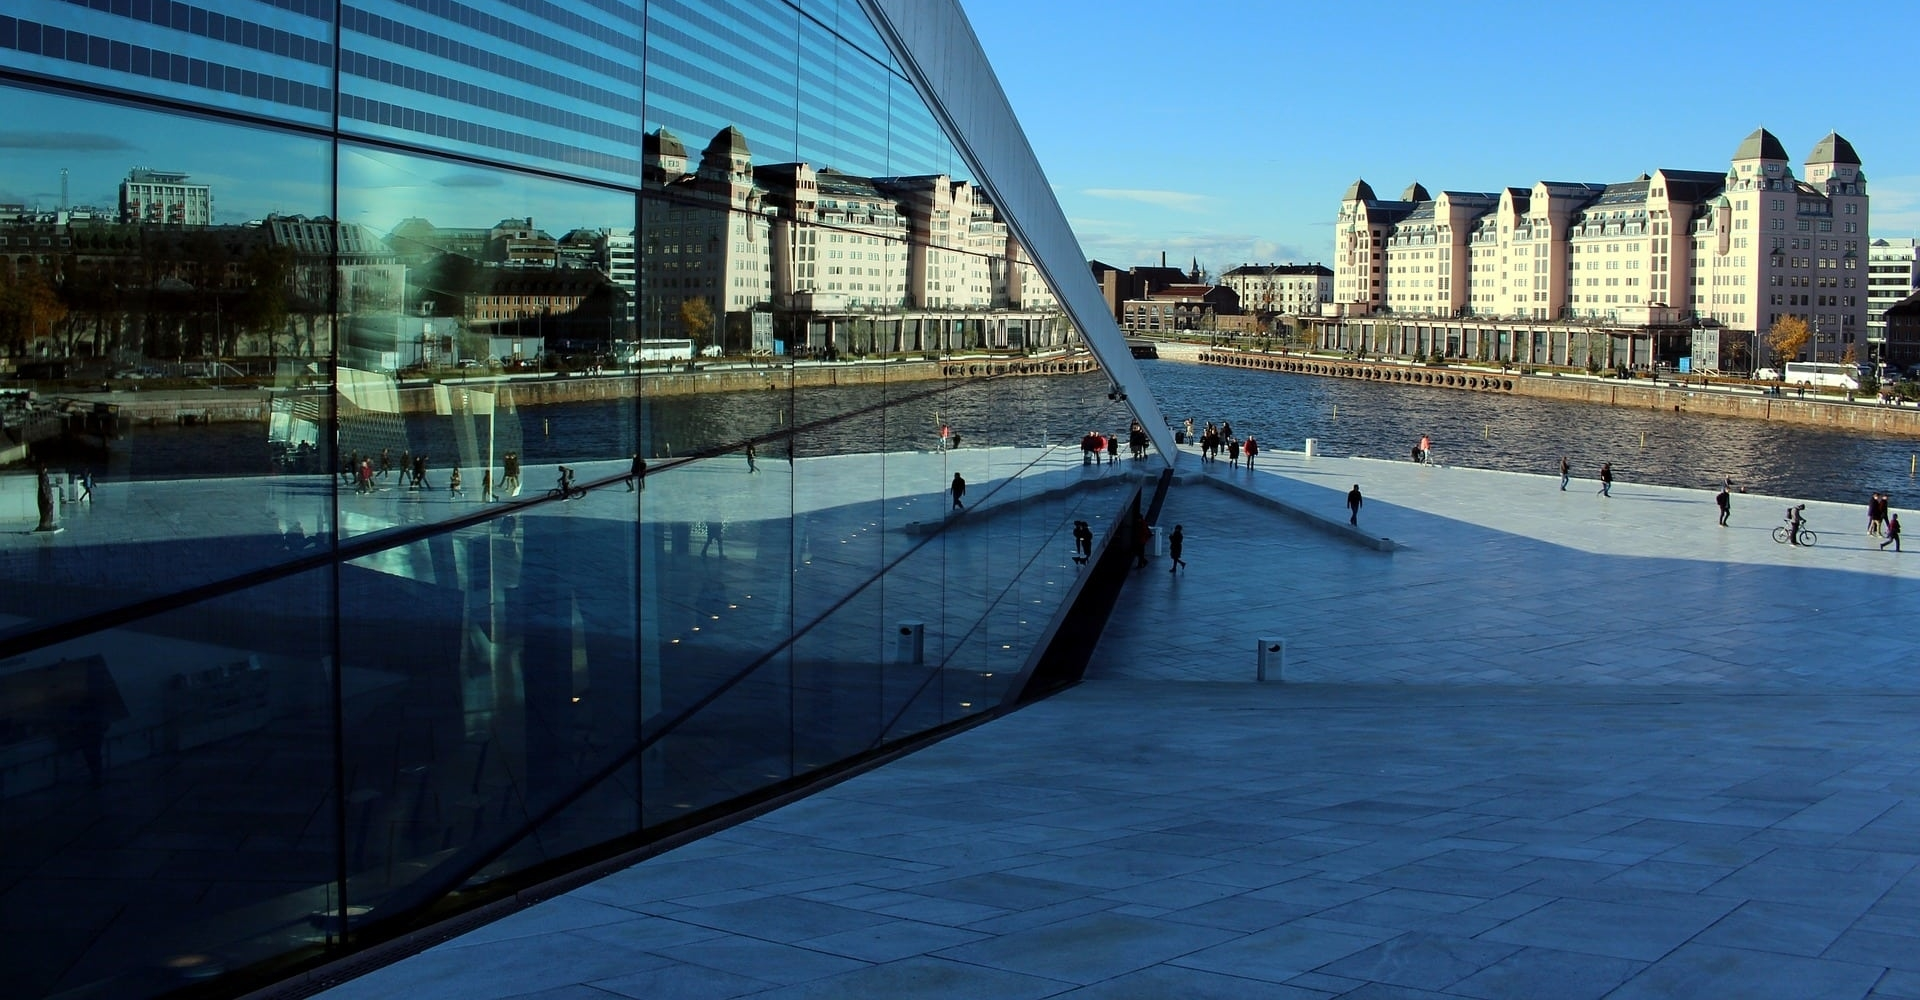 Luxe reis Oslo - Indyque Travel